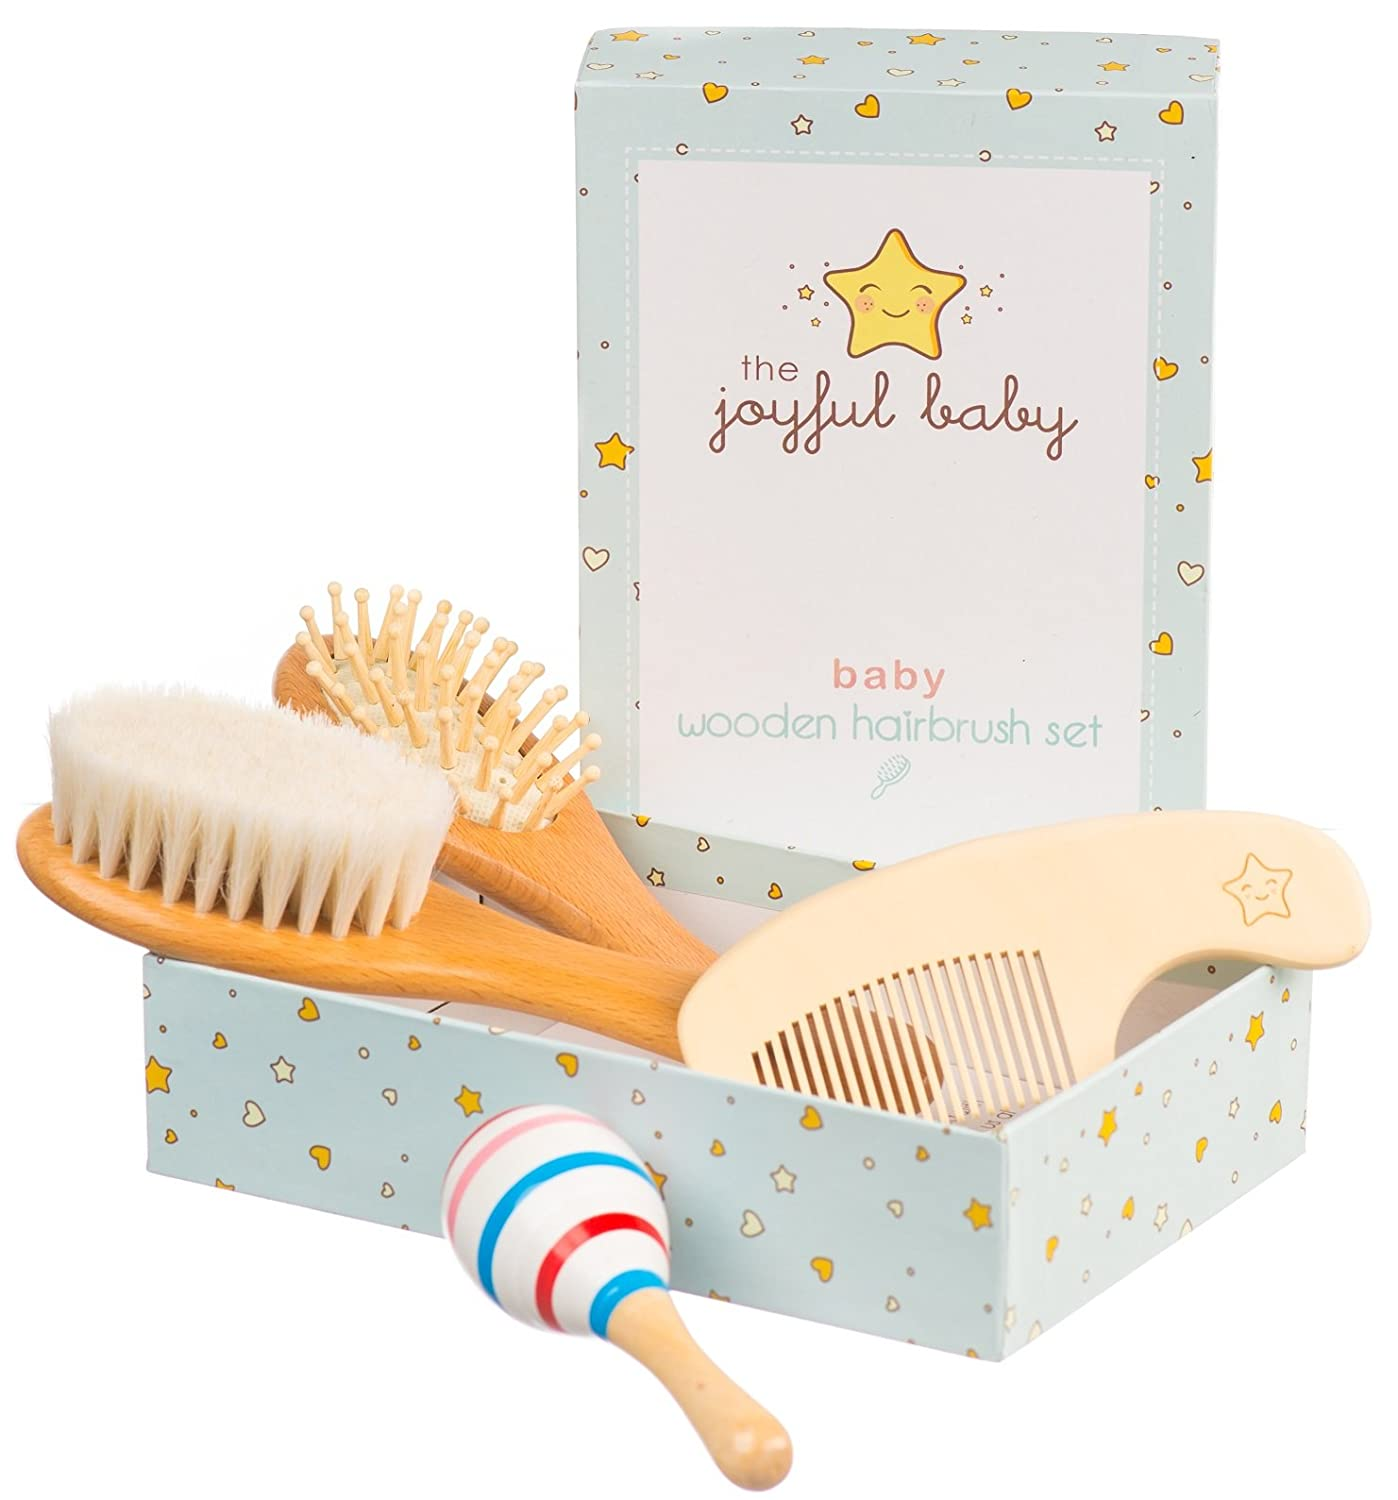 Wooden Baby Brush Set: 4-Pack Set of Natural Goat Hair Bristles Brush + Wooden Bristles Brush + Comb + Wooden Toy | For newborns and toddlers | Perfect Baby Shower Gift by The Joyful Baby